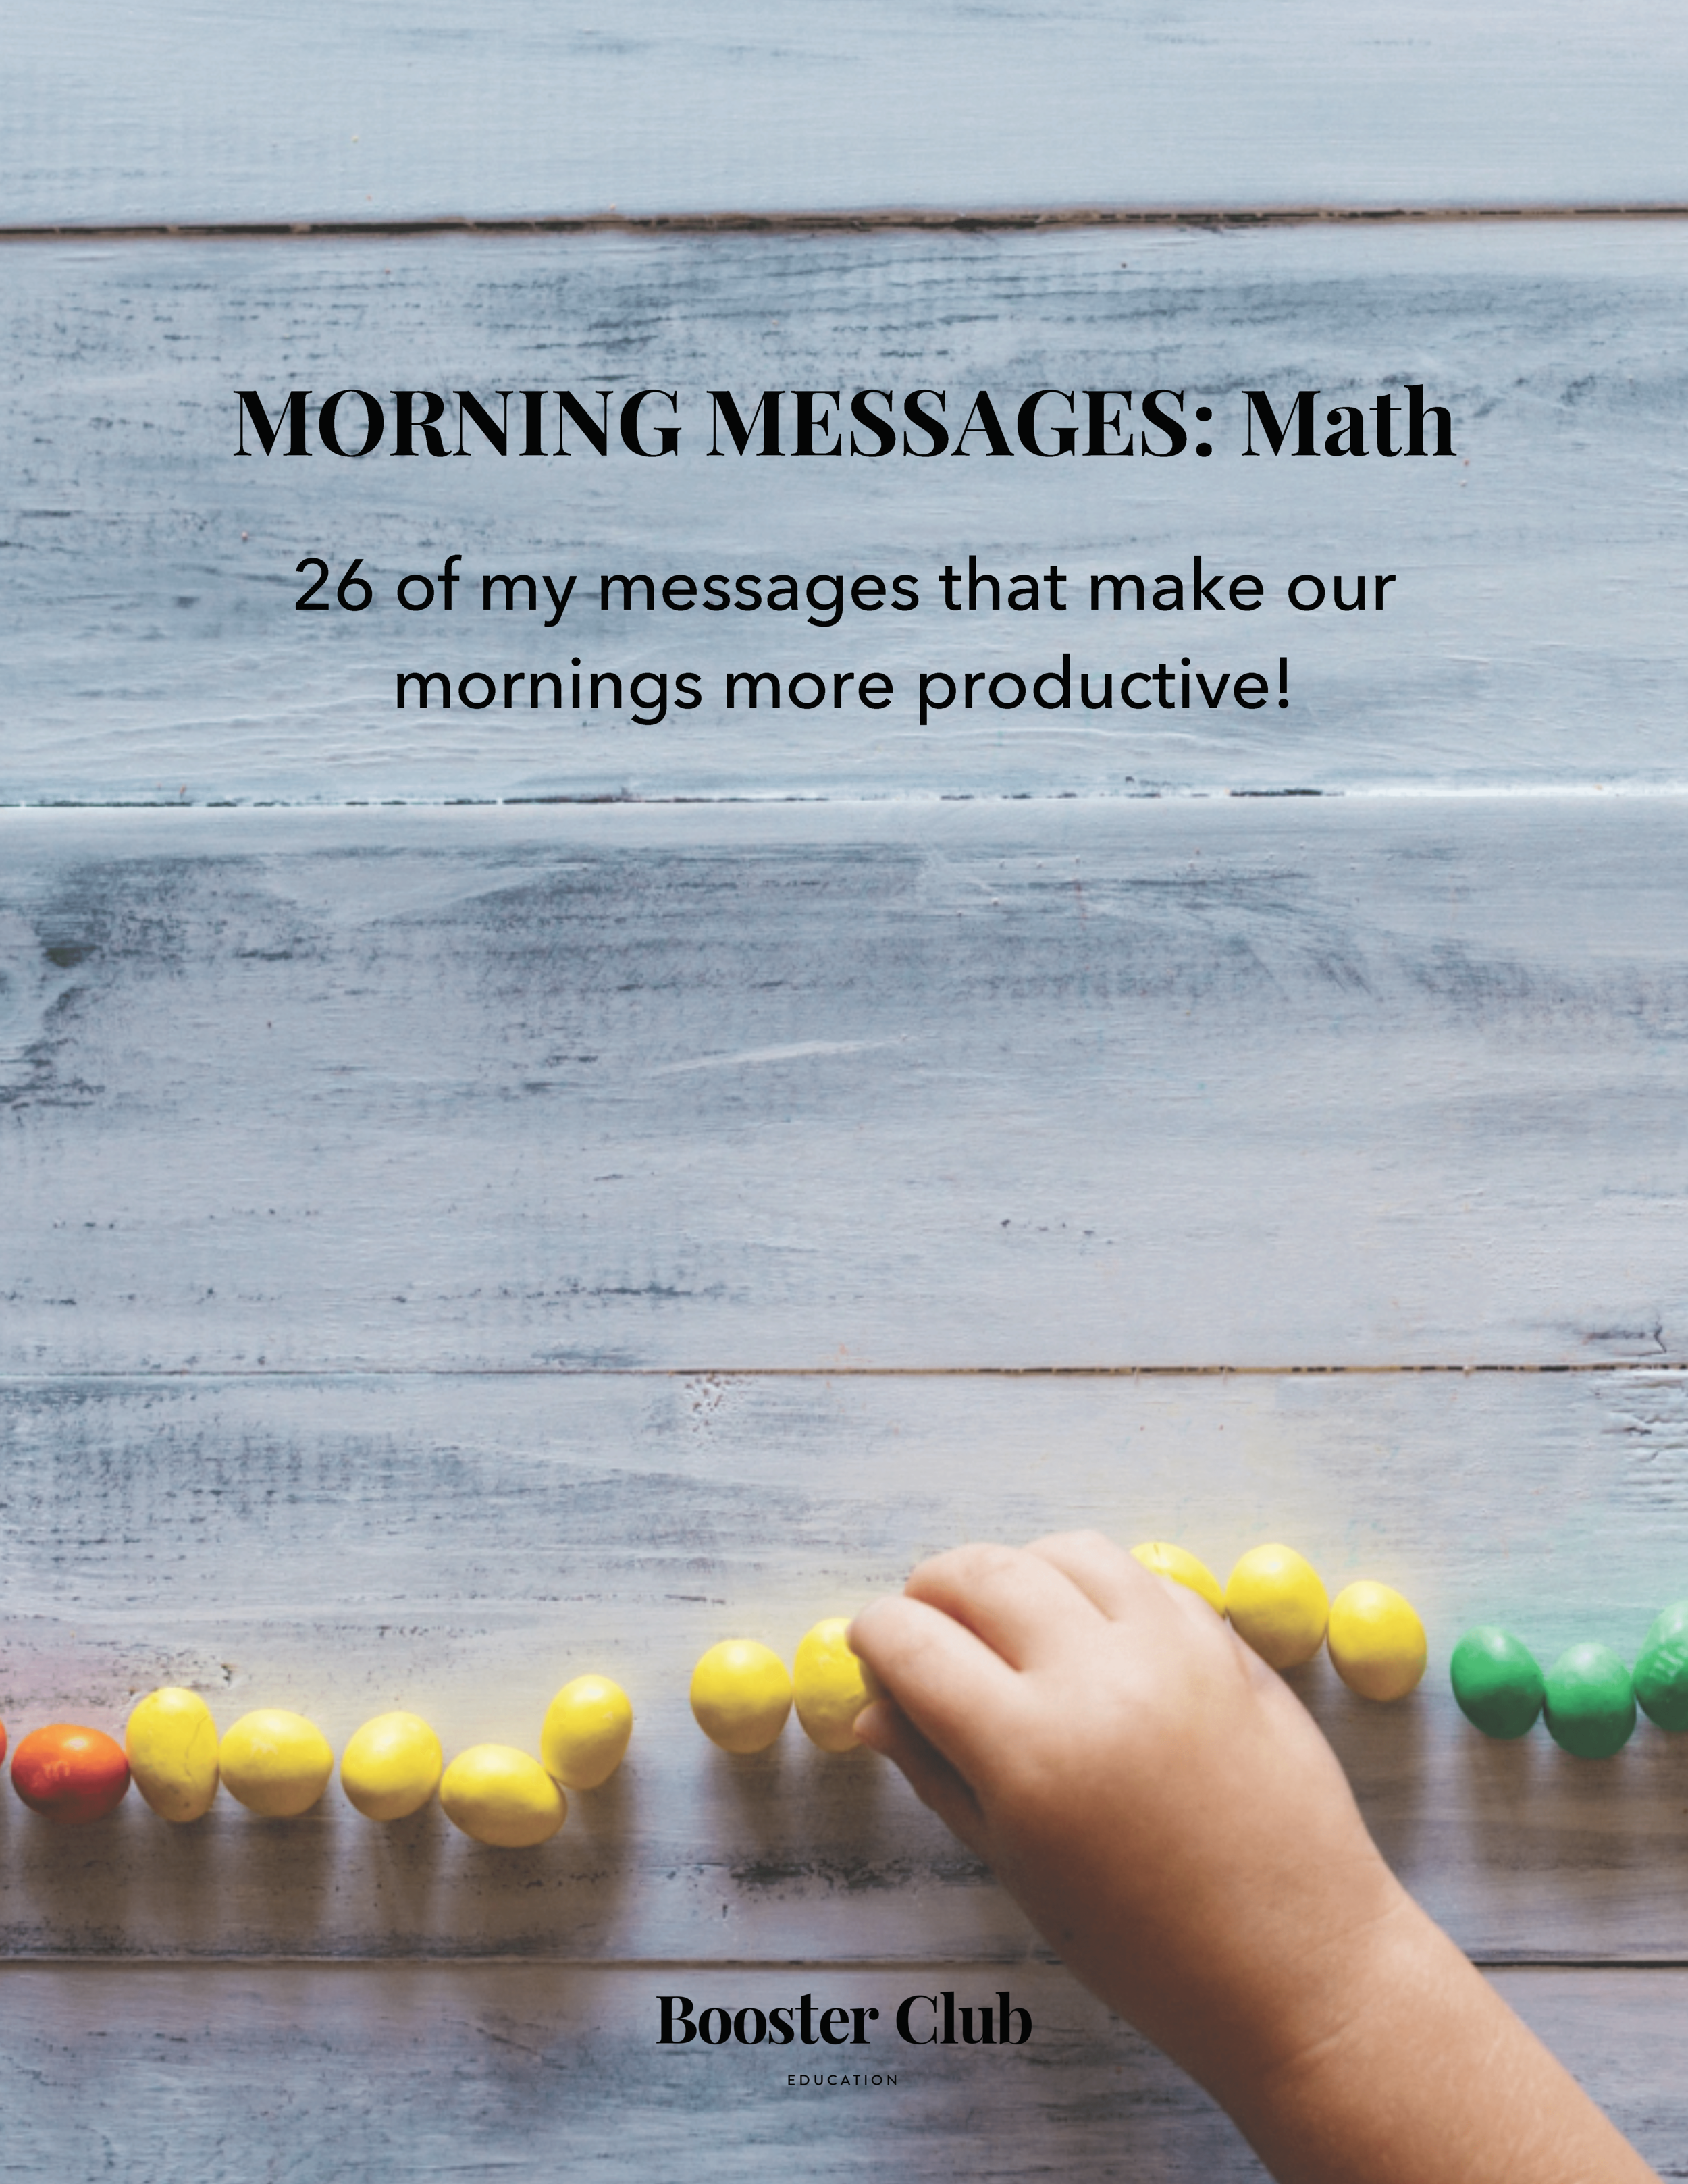 MORNING MESSAGES: Math